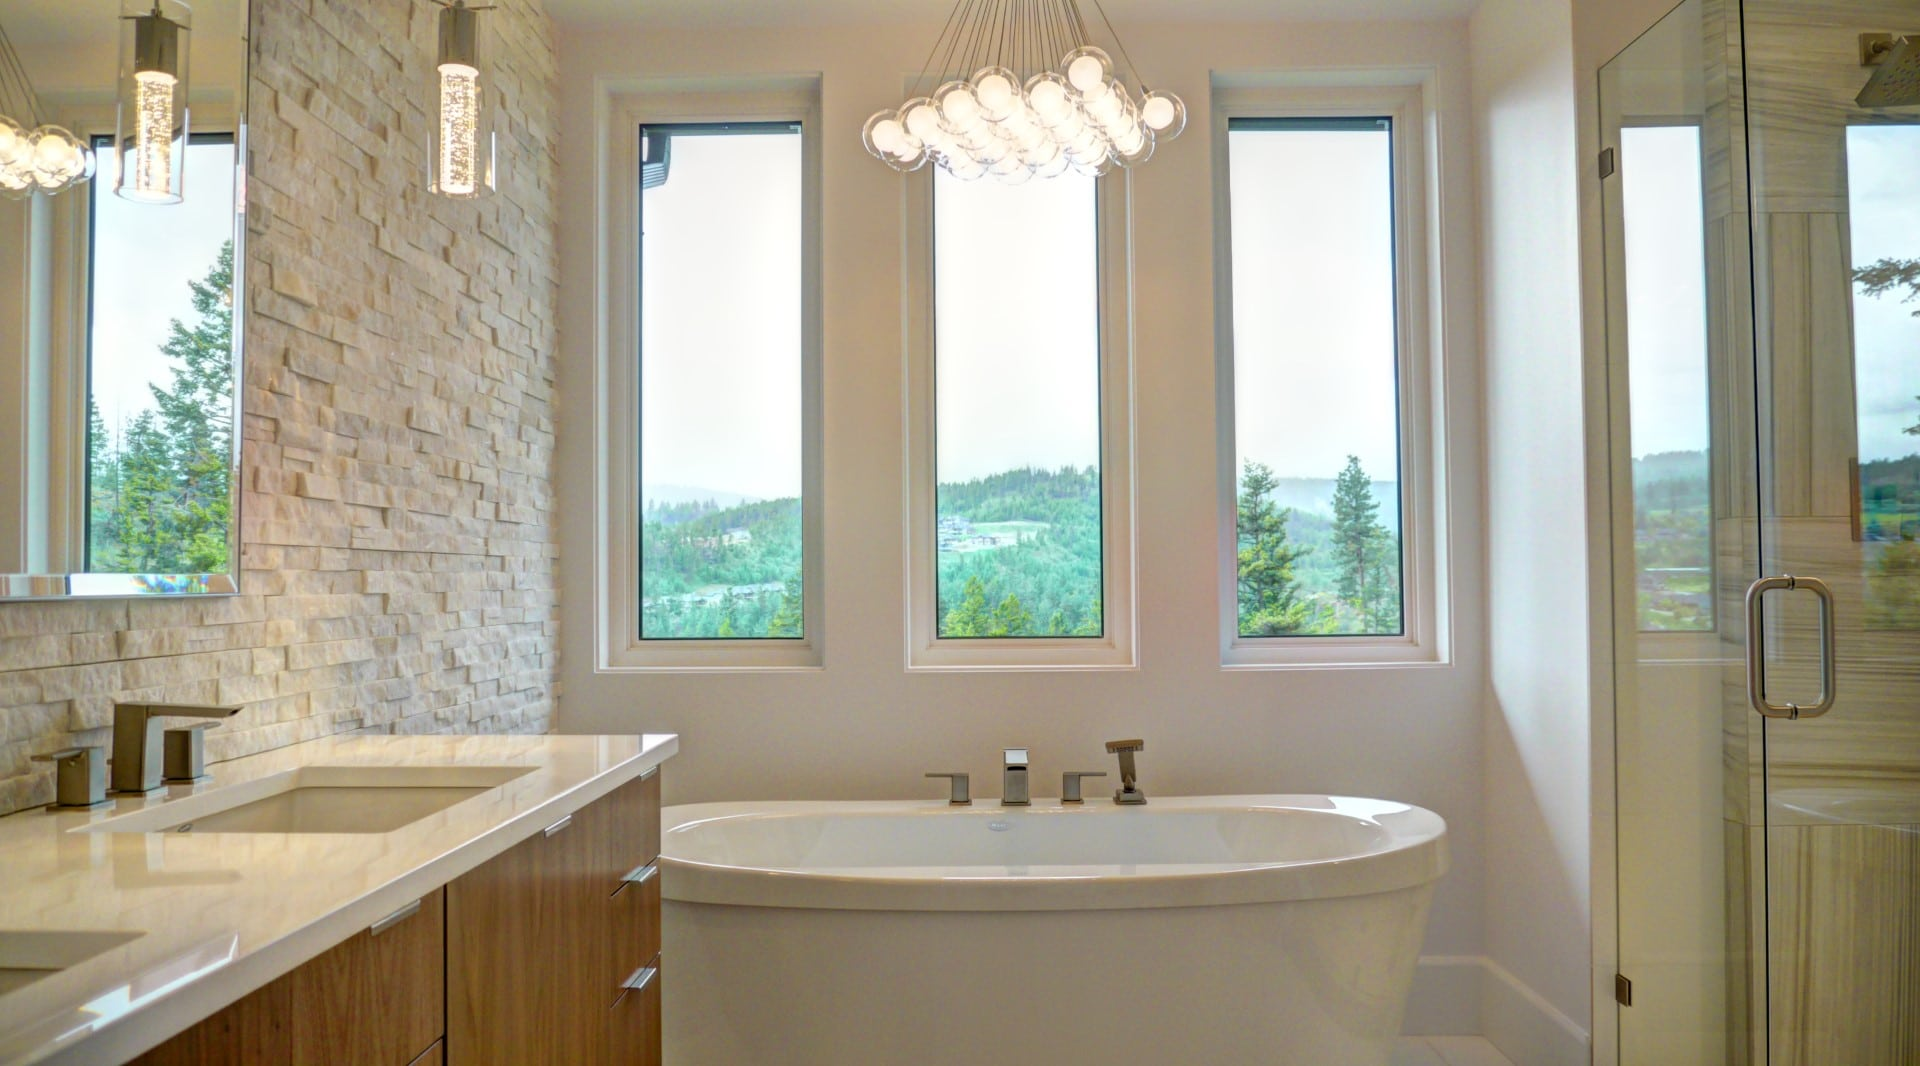 Predator Ridge - Show Home - 2 - Bathroom